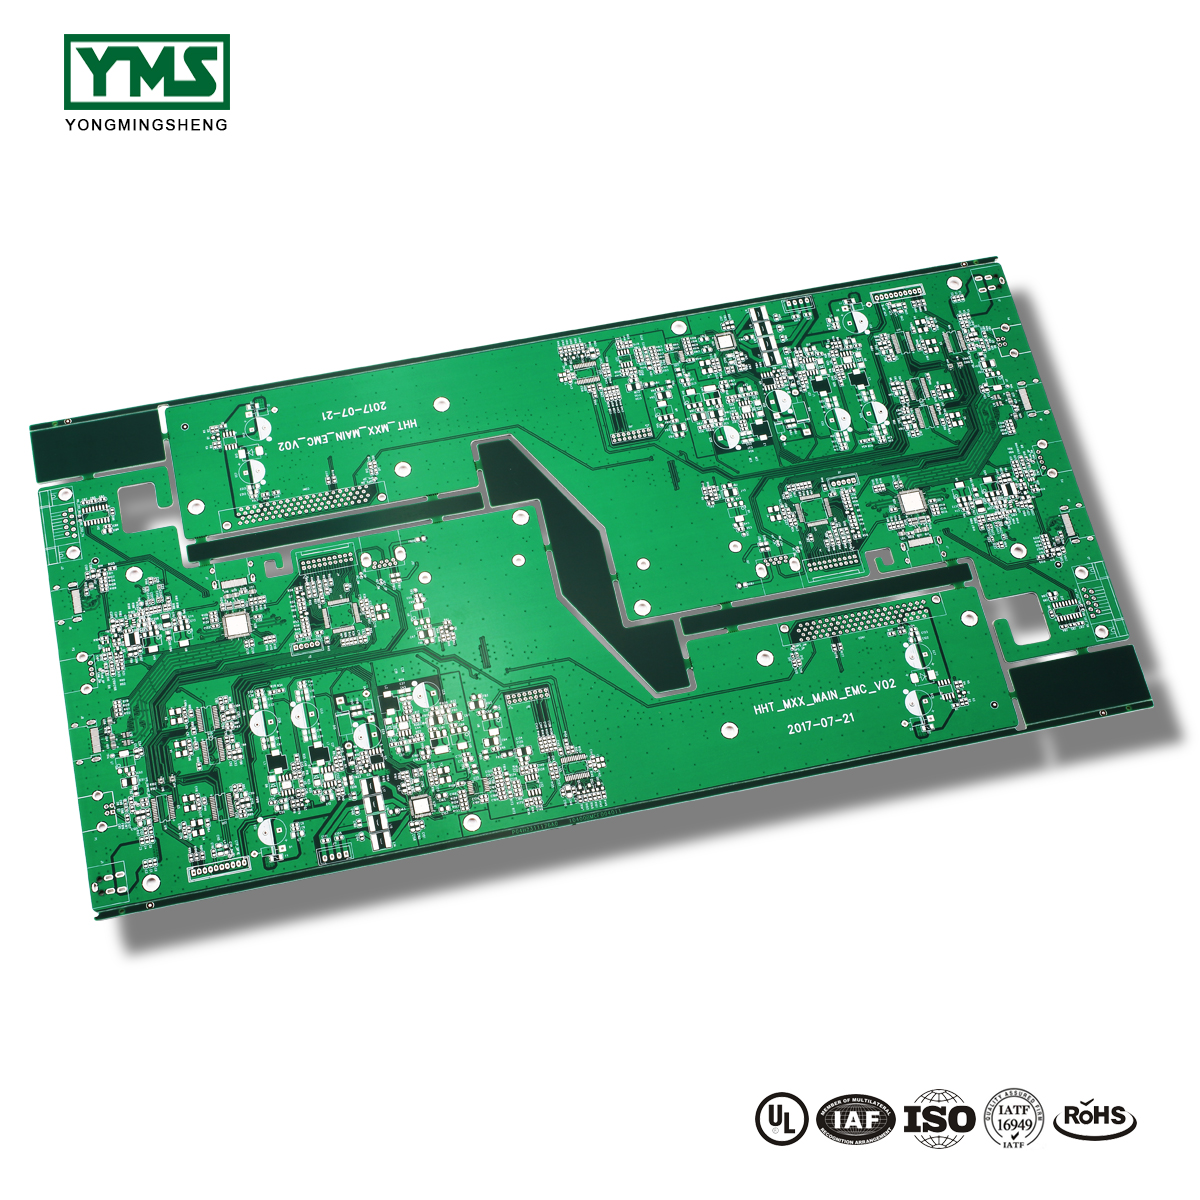 Factory supplied Hdi Rigid-Flex Pcb -